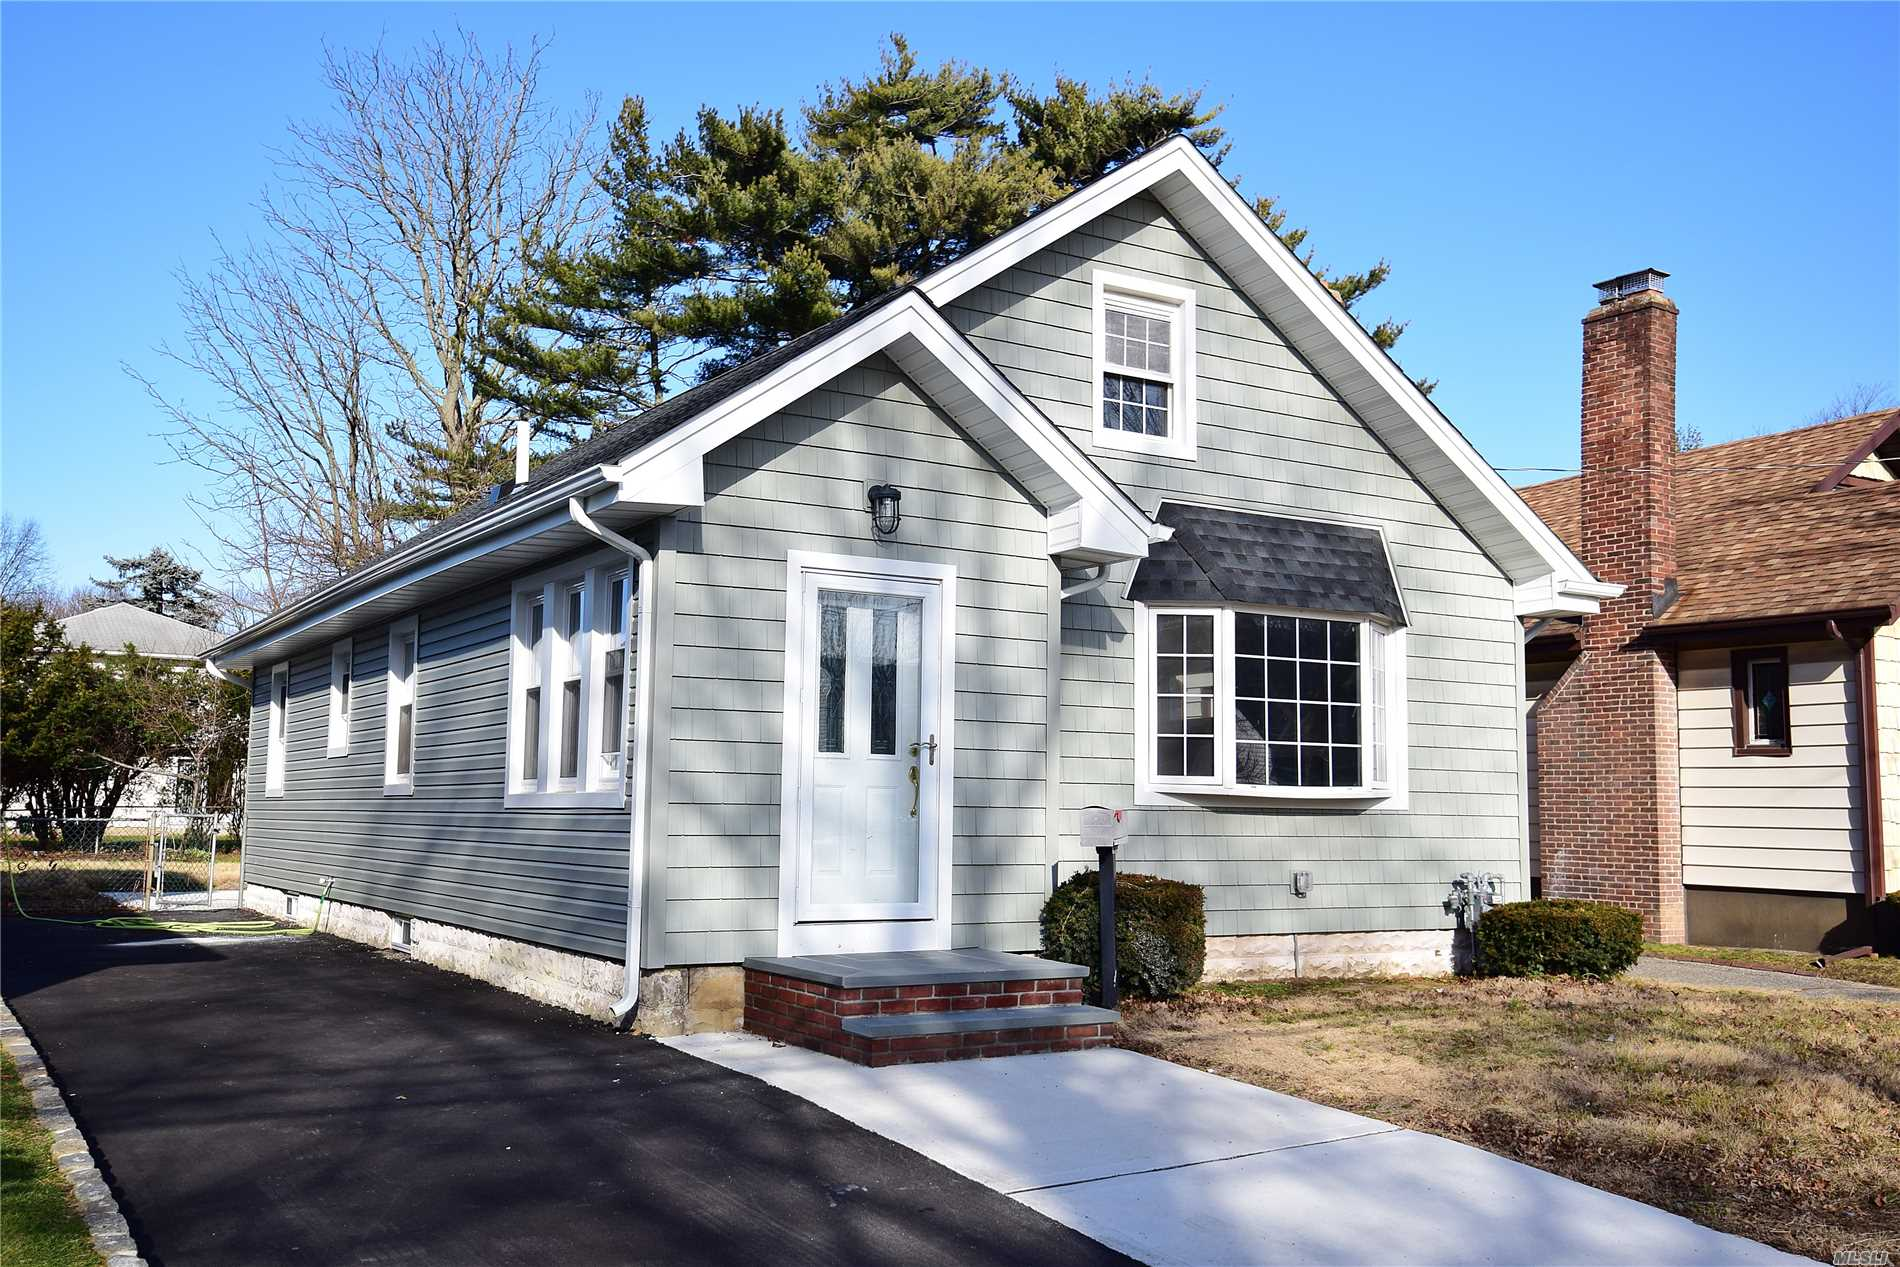 Charming 2 Bedroom Cape With Large Walk Up Attic. Completely Renovated, Hardwood Floors Throughout, New Eik With Granite Countertop And Stainless Steel Appliances W/ Breakfast Nook, Brand New Bath. Addt'l Updates Include, Plumbing, Electric, Roof, Siding And Windows.